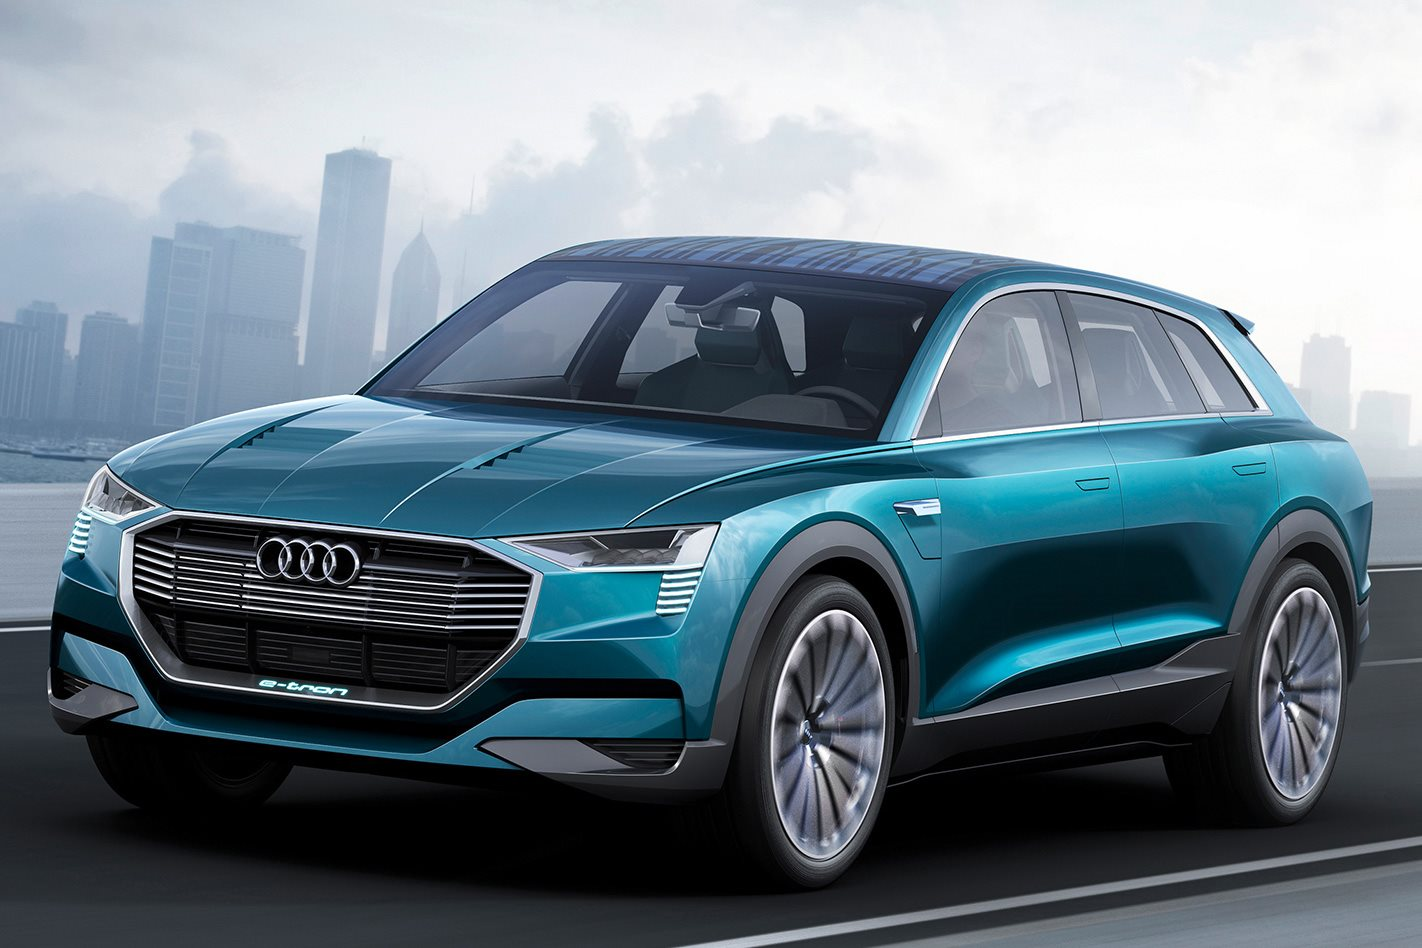 Audi Points To Q6 E-tron With Electric Quattro SUV